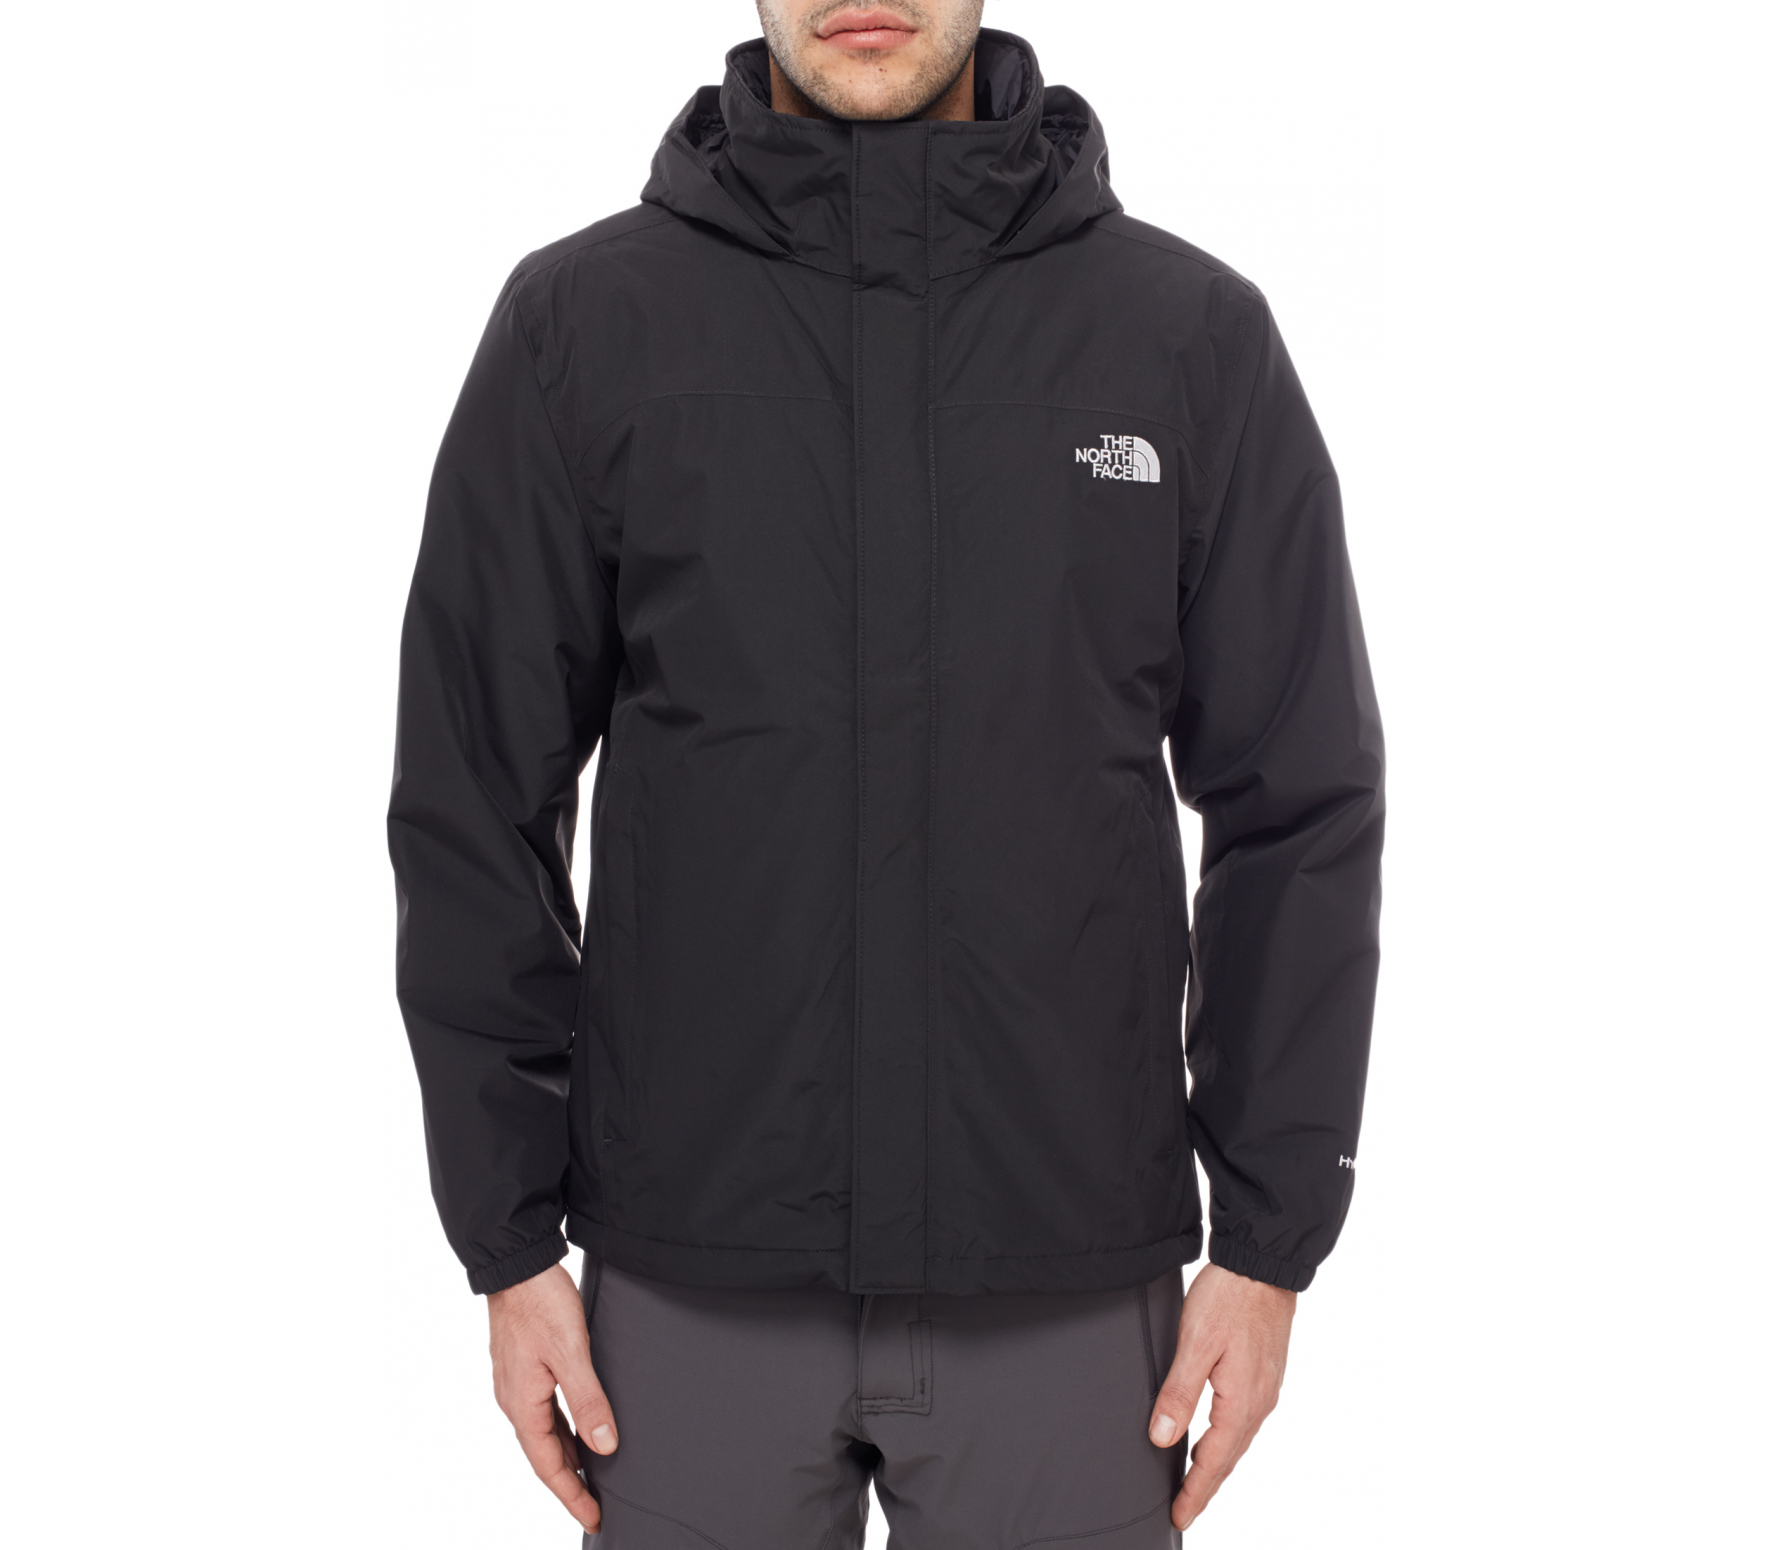 The North Face - Resolve Insulated Uomo giacca (nero) compra online ... 6504252091b1